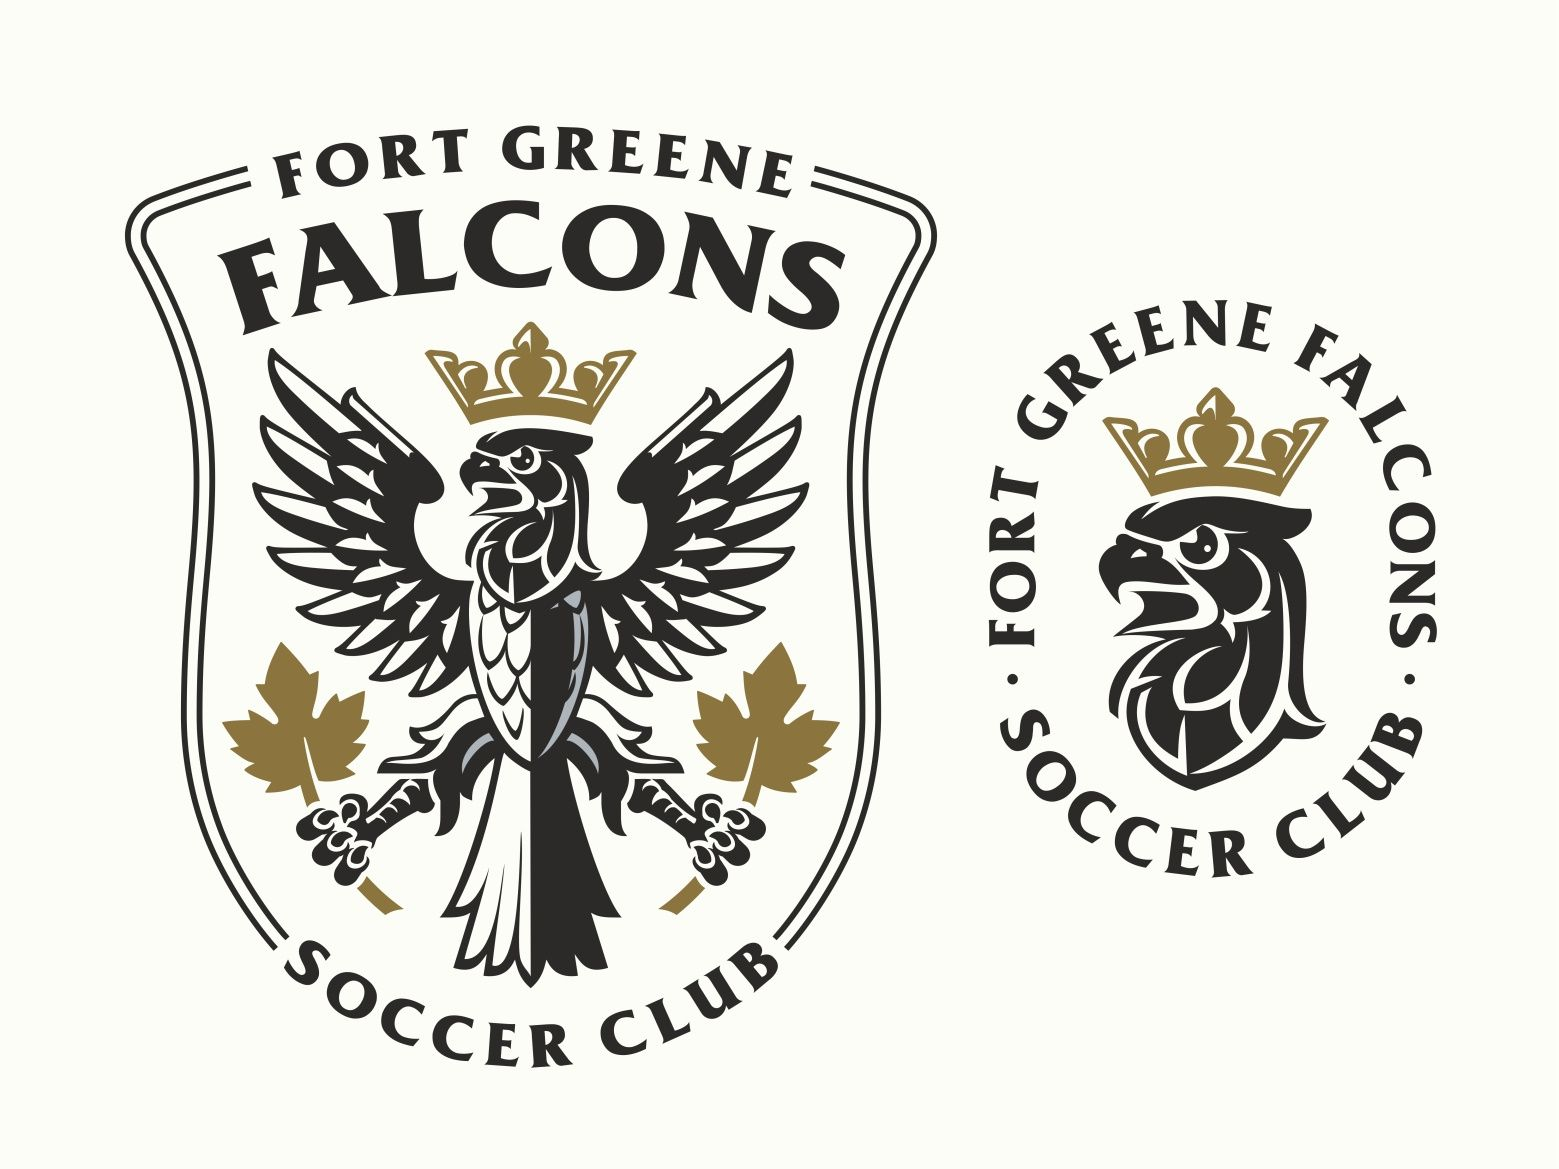 Falcons Soccer Club Logo In 2020 Soccer Club Lion Logo Circle Logos